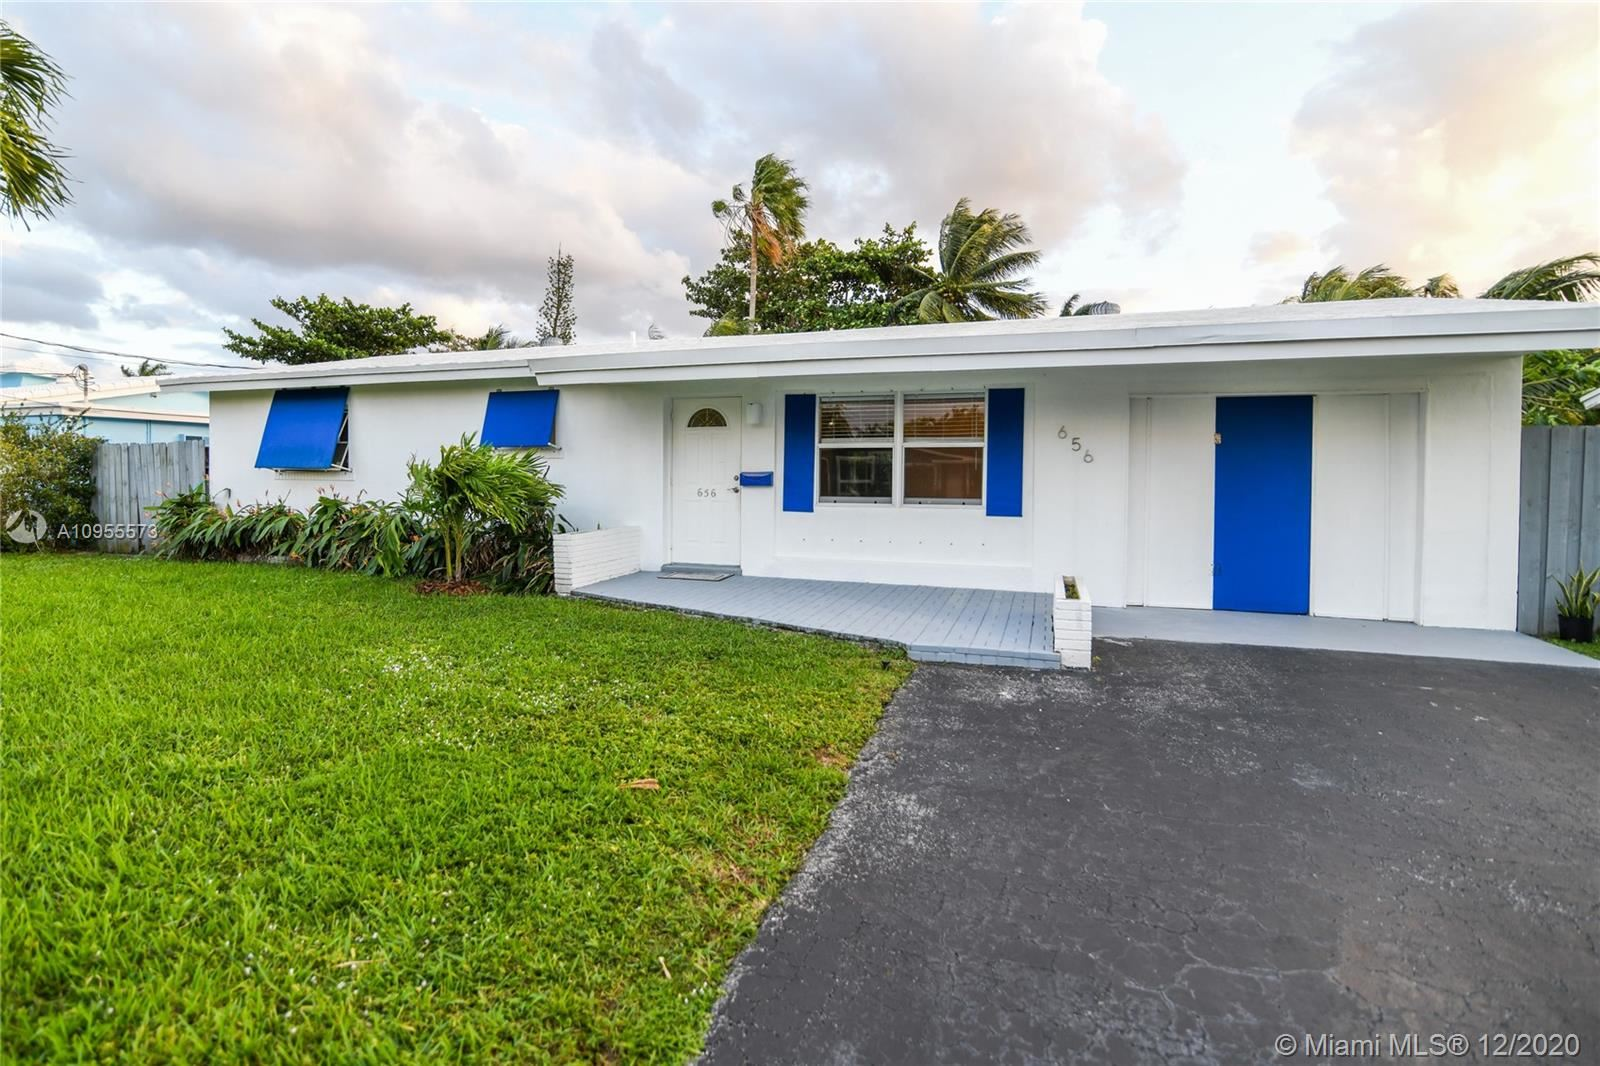 Photo of 656 NW 30th Ct, Wilton Manors, FL 33311 (MLS # A10955573)